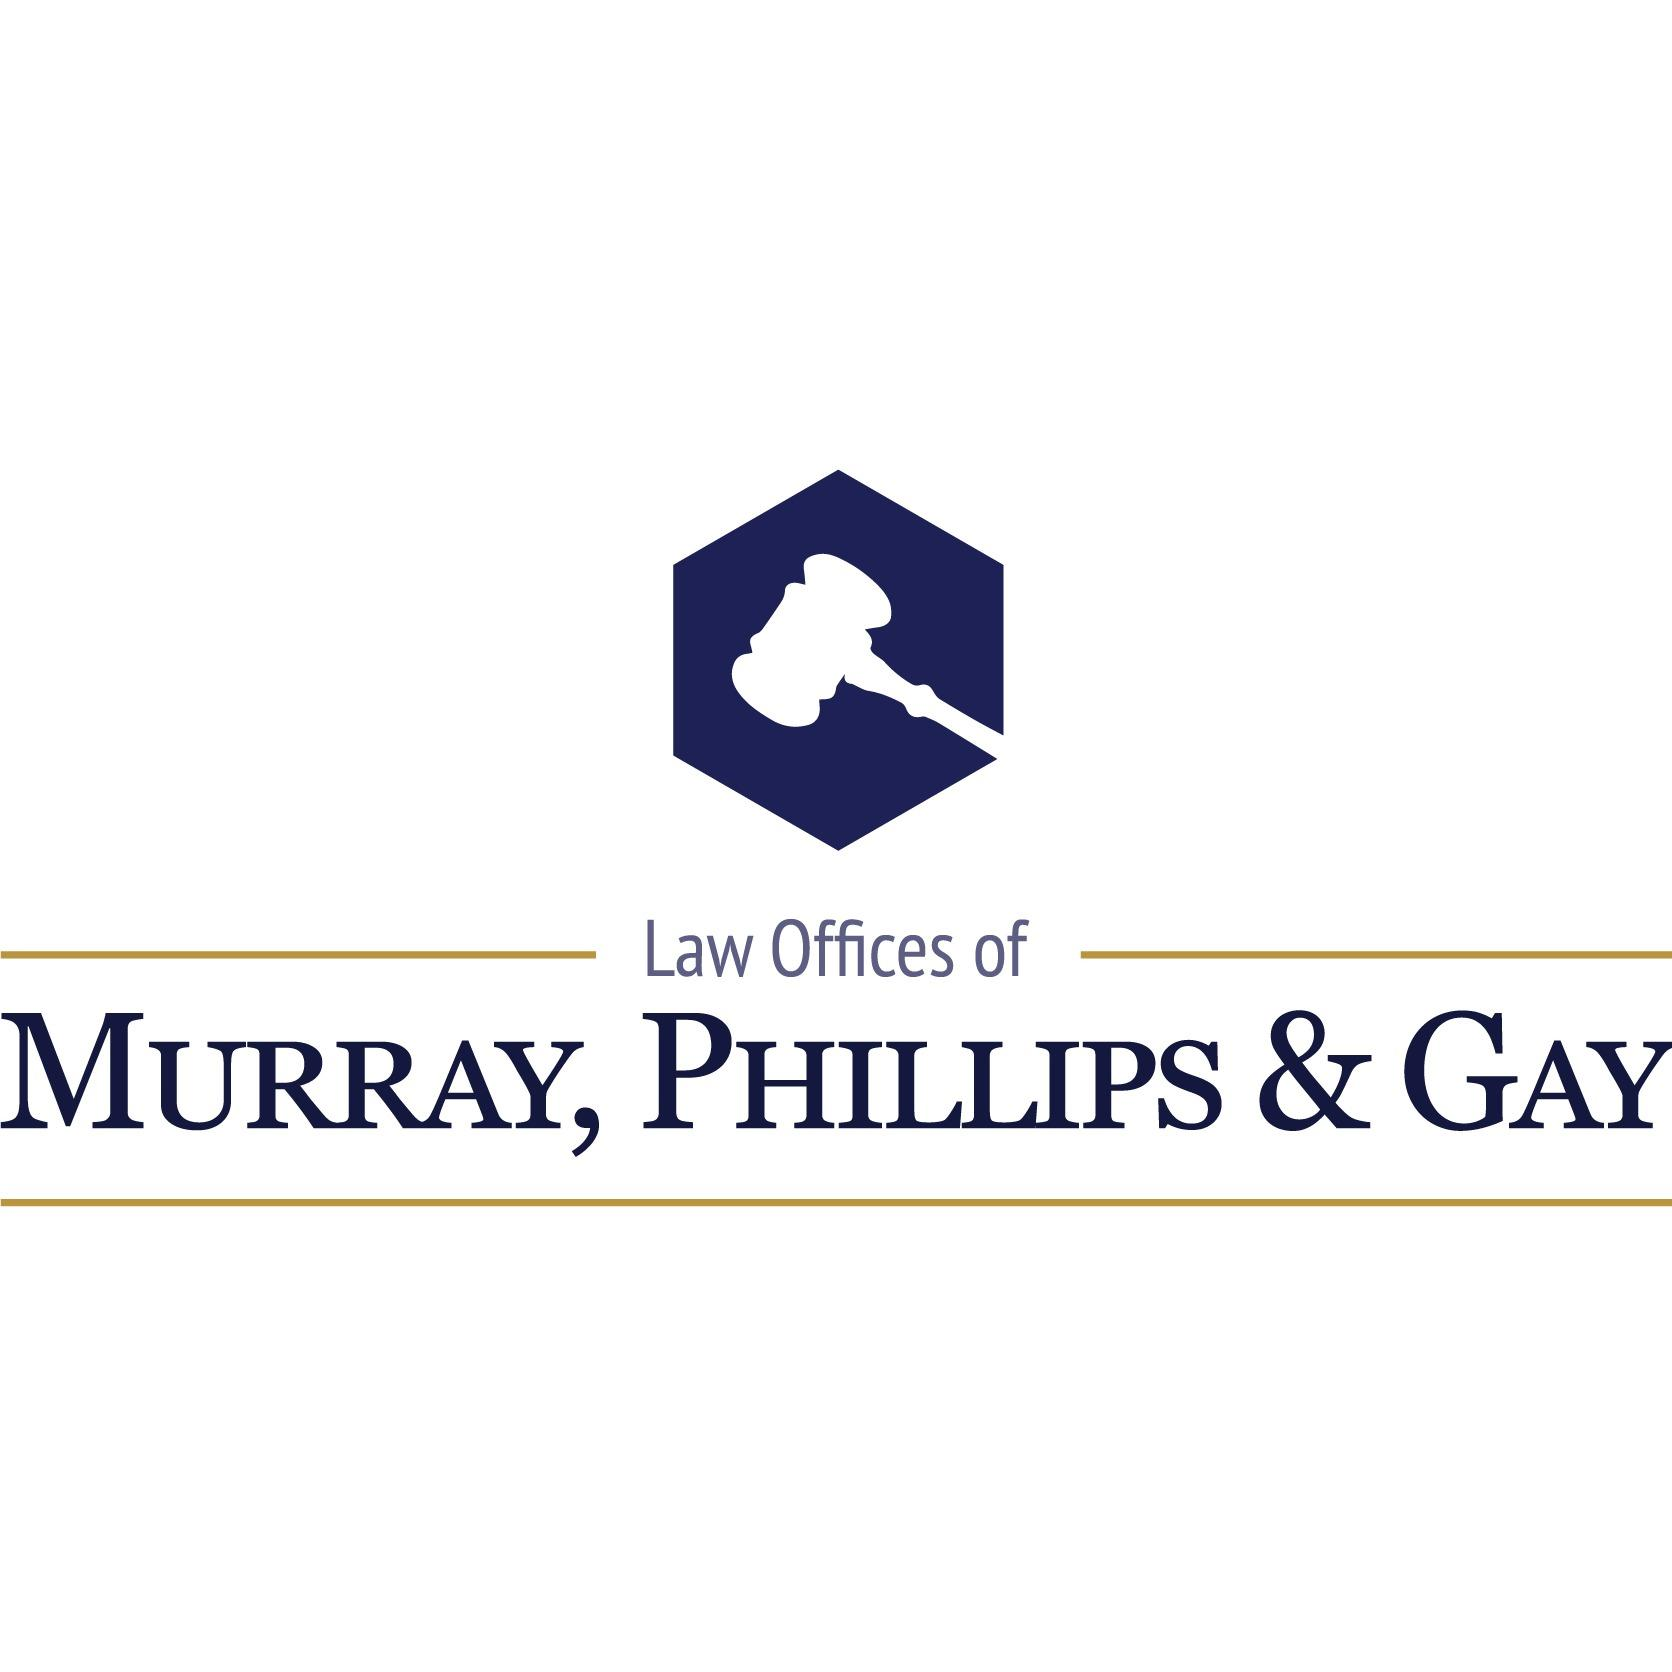 Law Offices of Murray, Phillips & Gay image 4